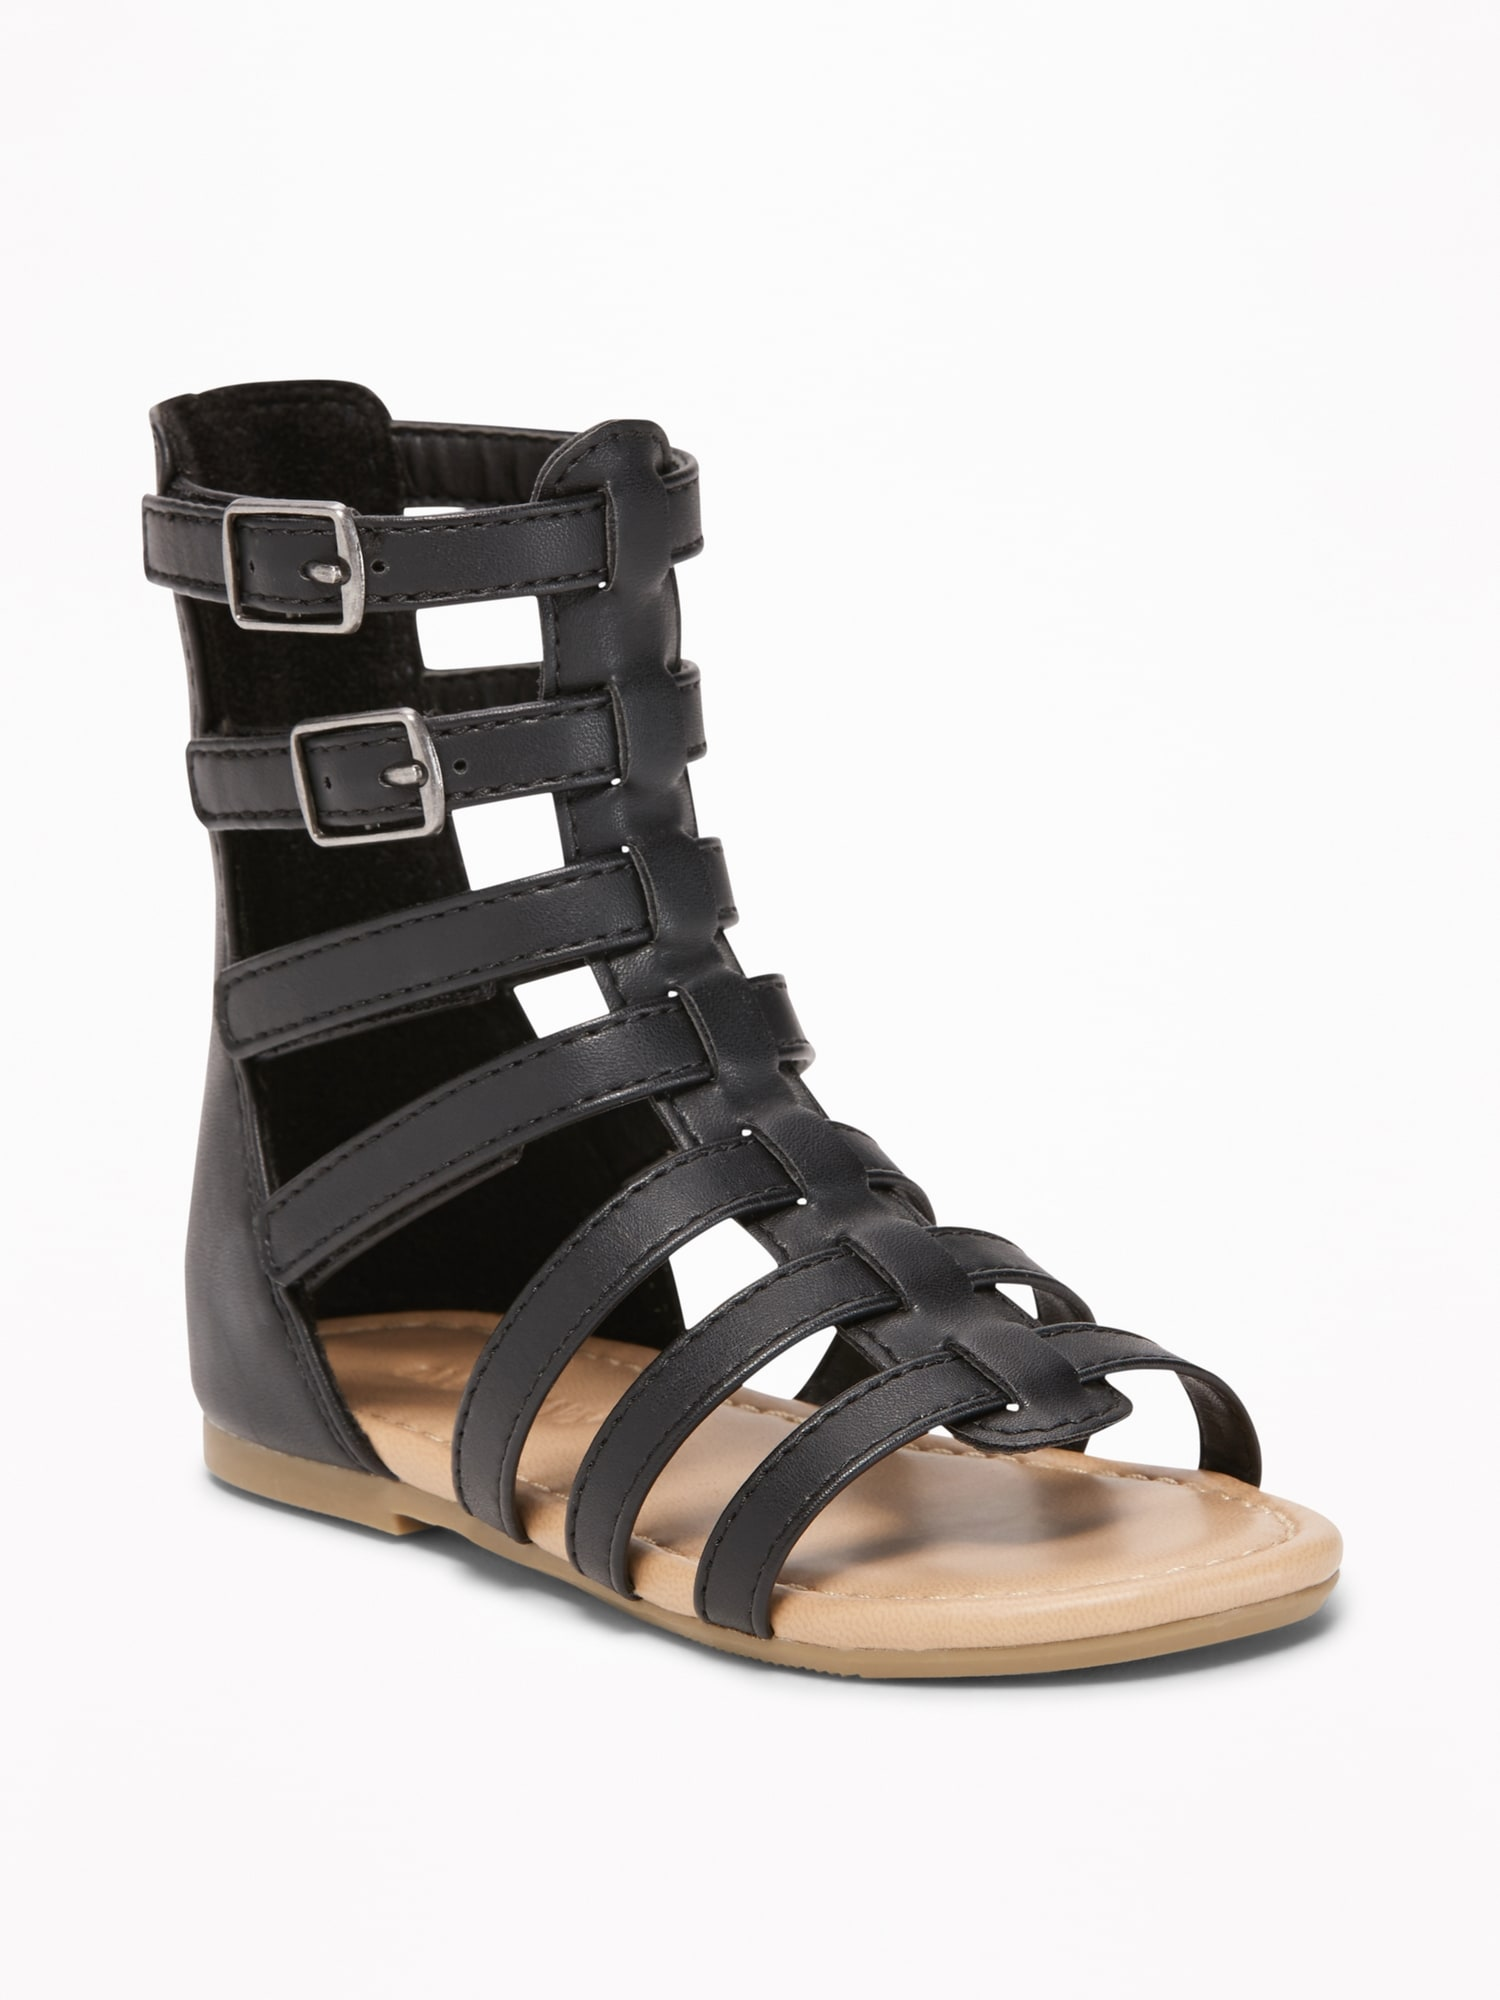 Tall Gladiator Sandals for Toddler Girls & Baby